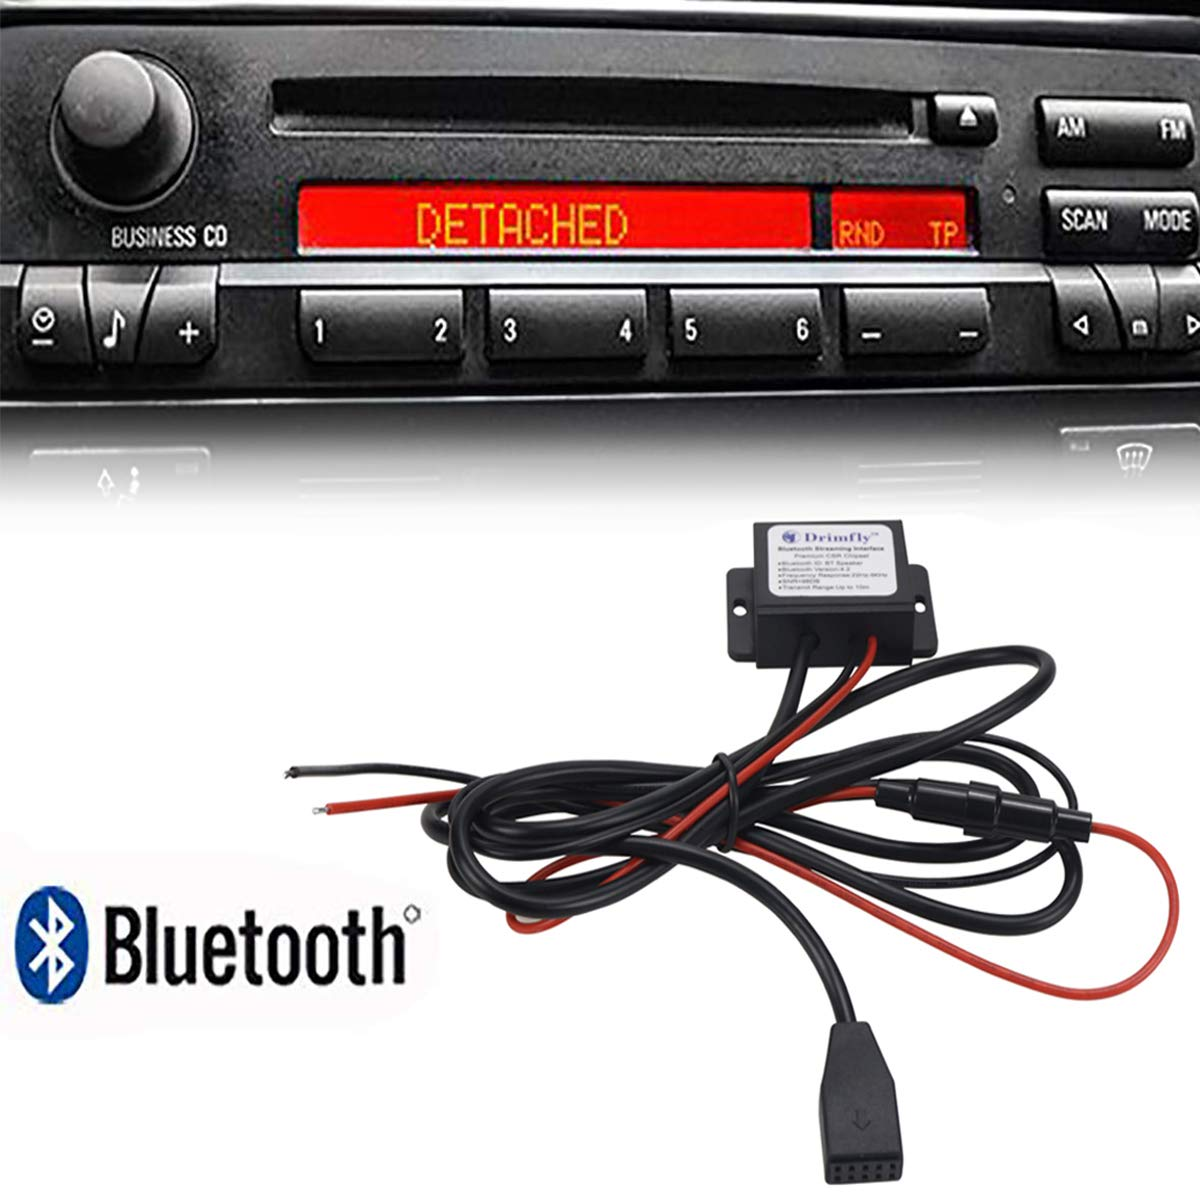 Moonet AUX Input Adaptor CD Changer Cable for BMW E46 MP3 iPod iPhone Apple Female Jack 4350466343